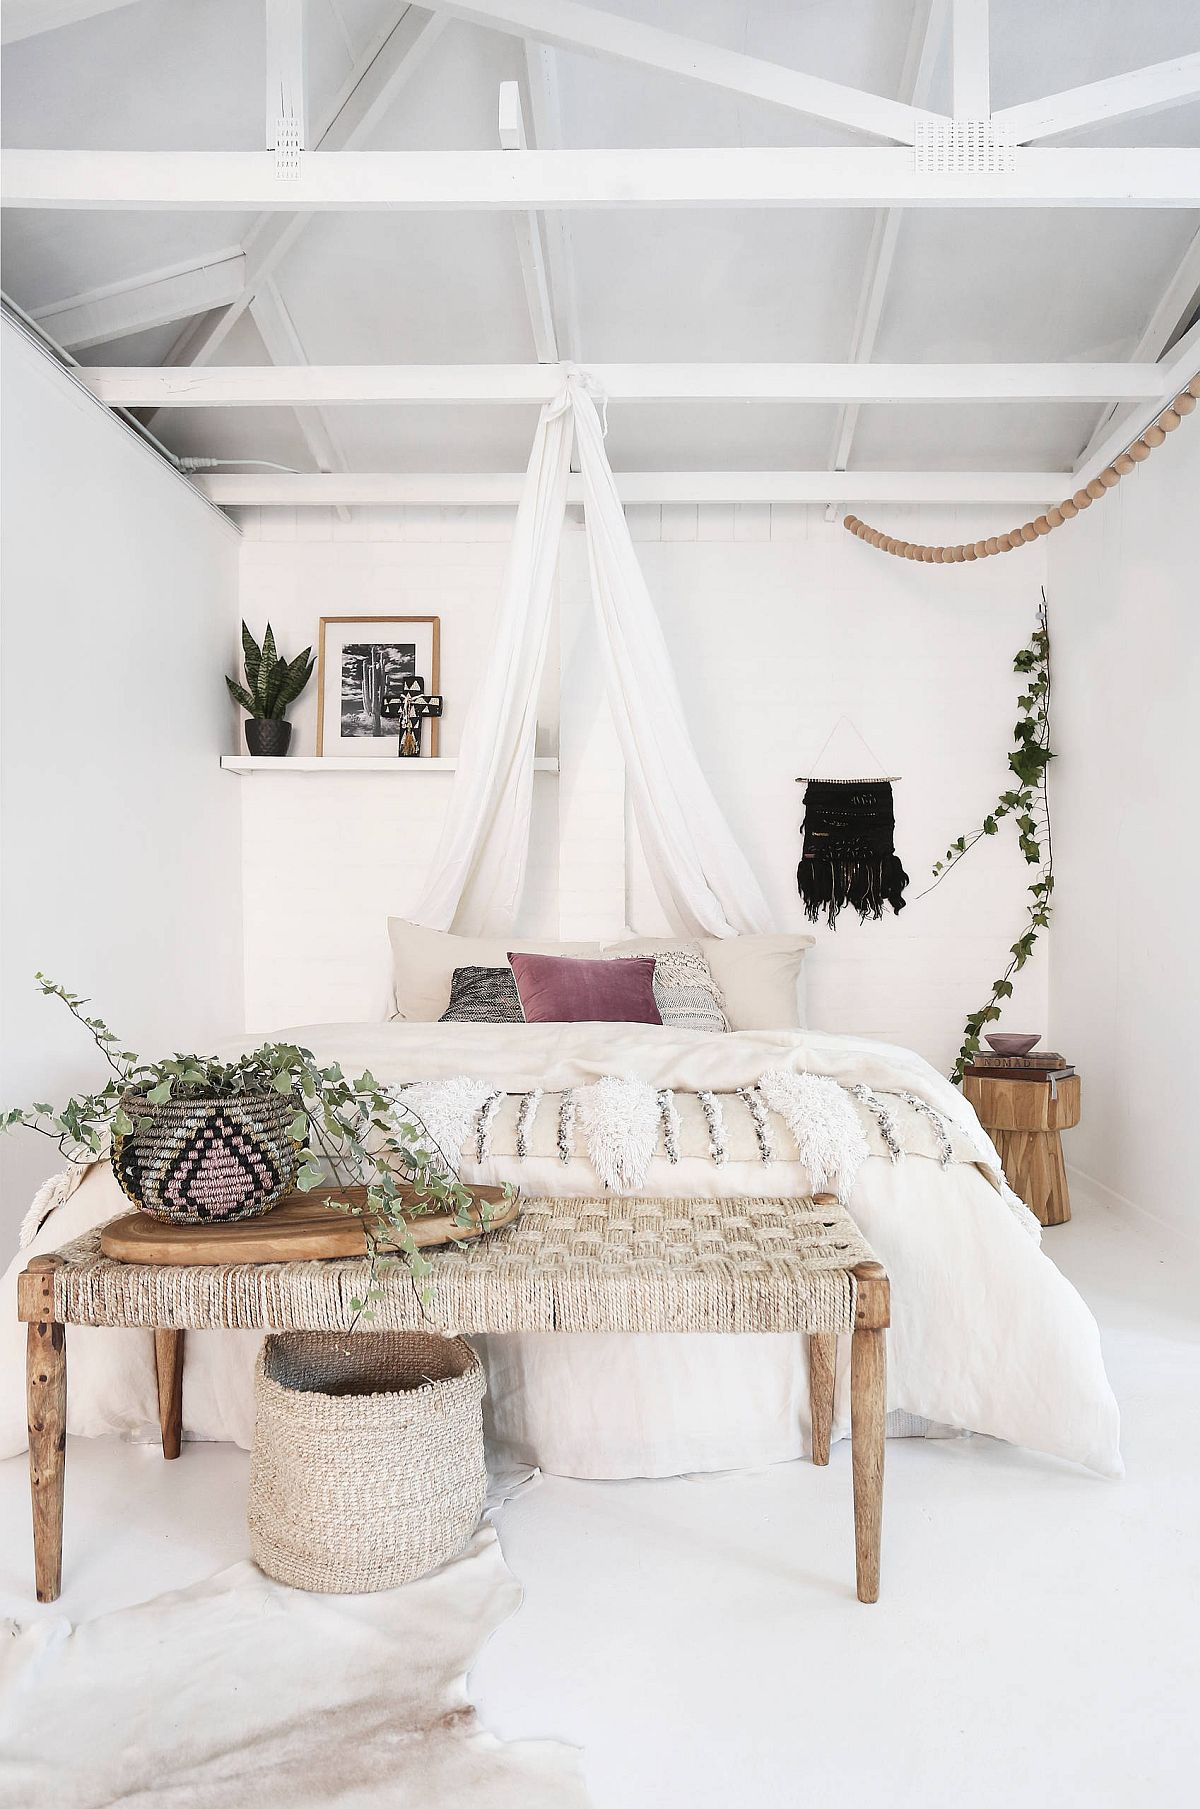 Mix a bit of beach style with bohemian touches for a more curated backdrop